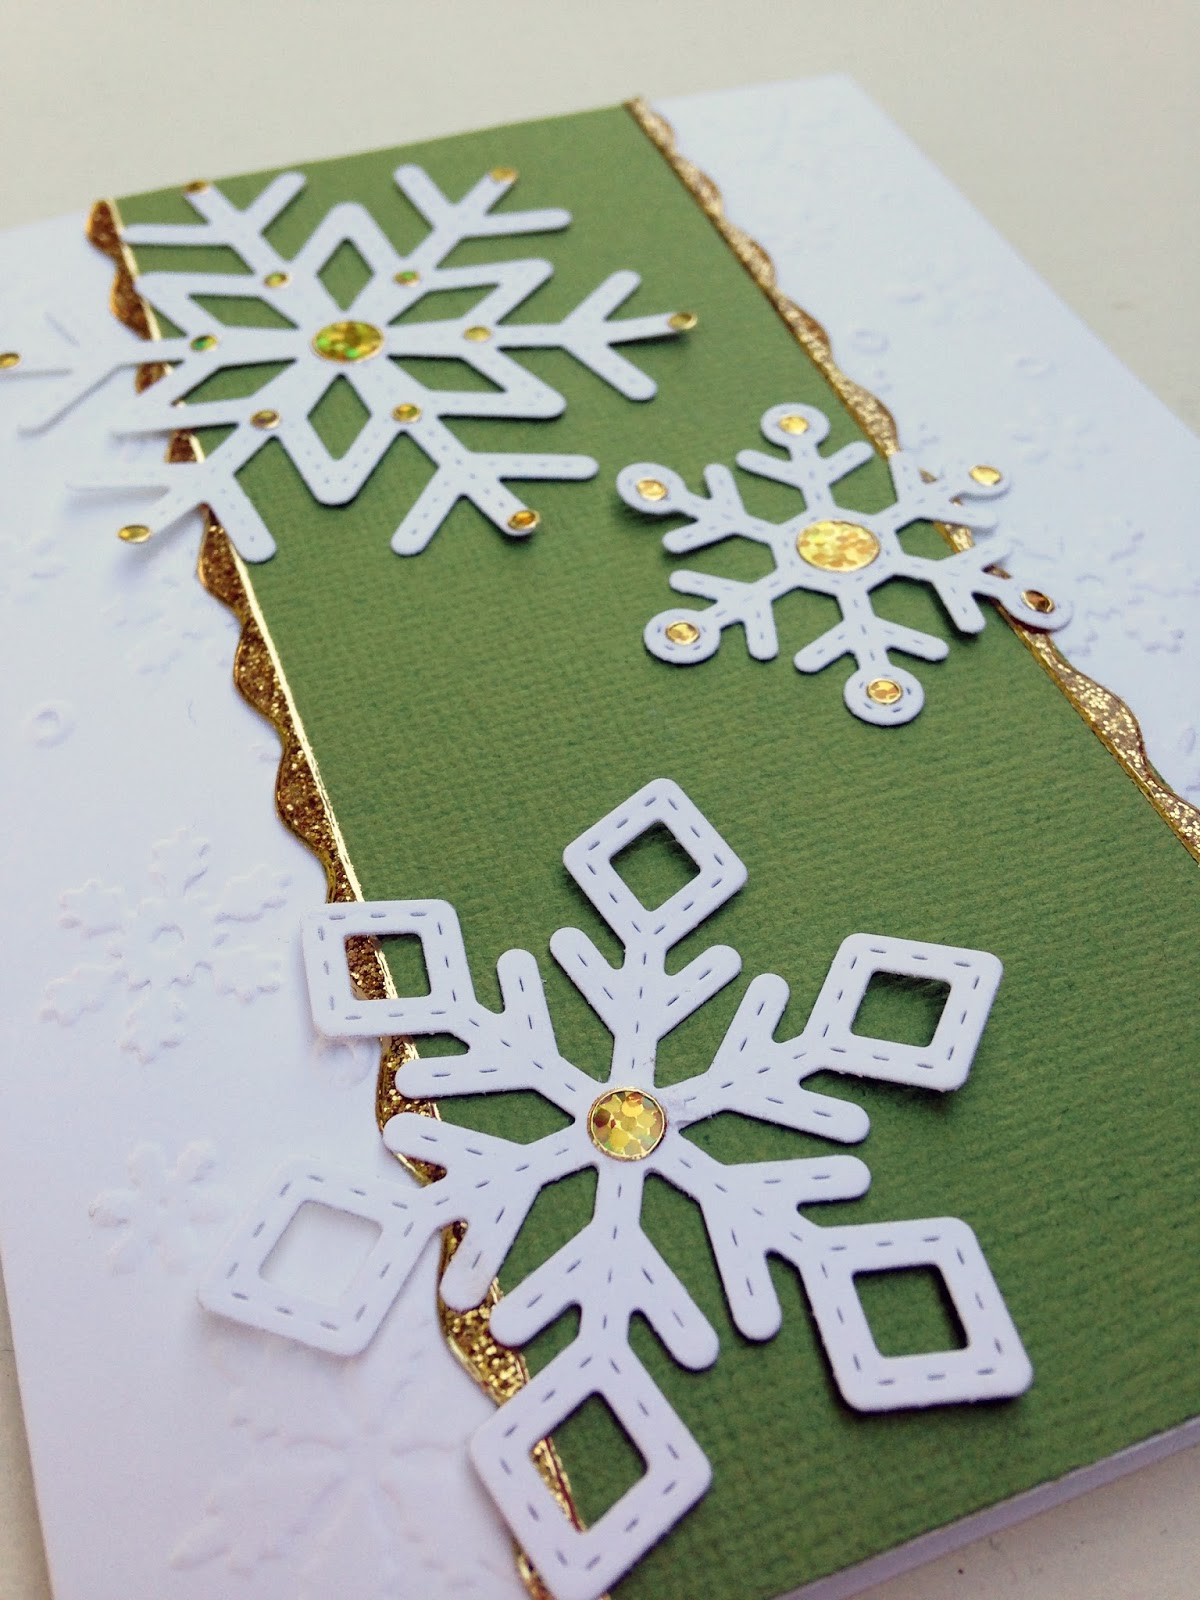 Snowflake Card @craftsavvy @lawnfawn #craftwarehouse #lawnfawn #holiday #christmas #card